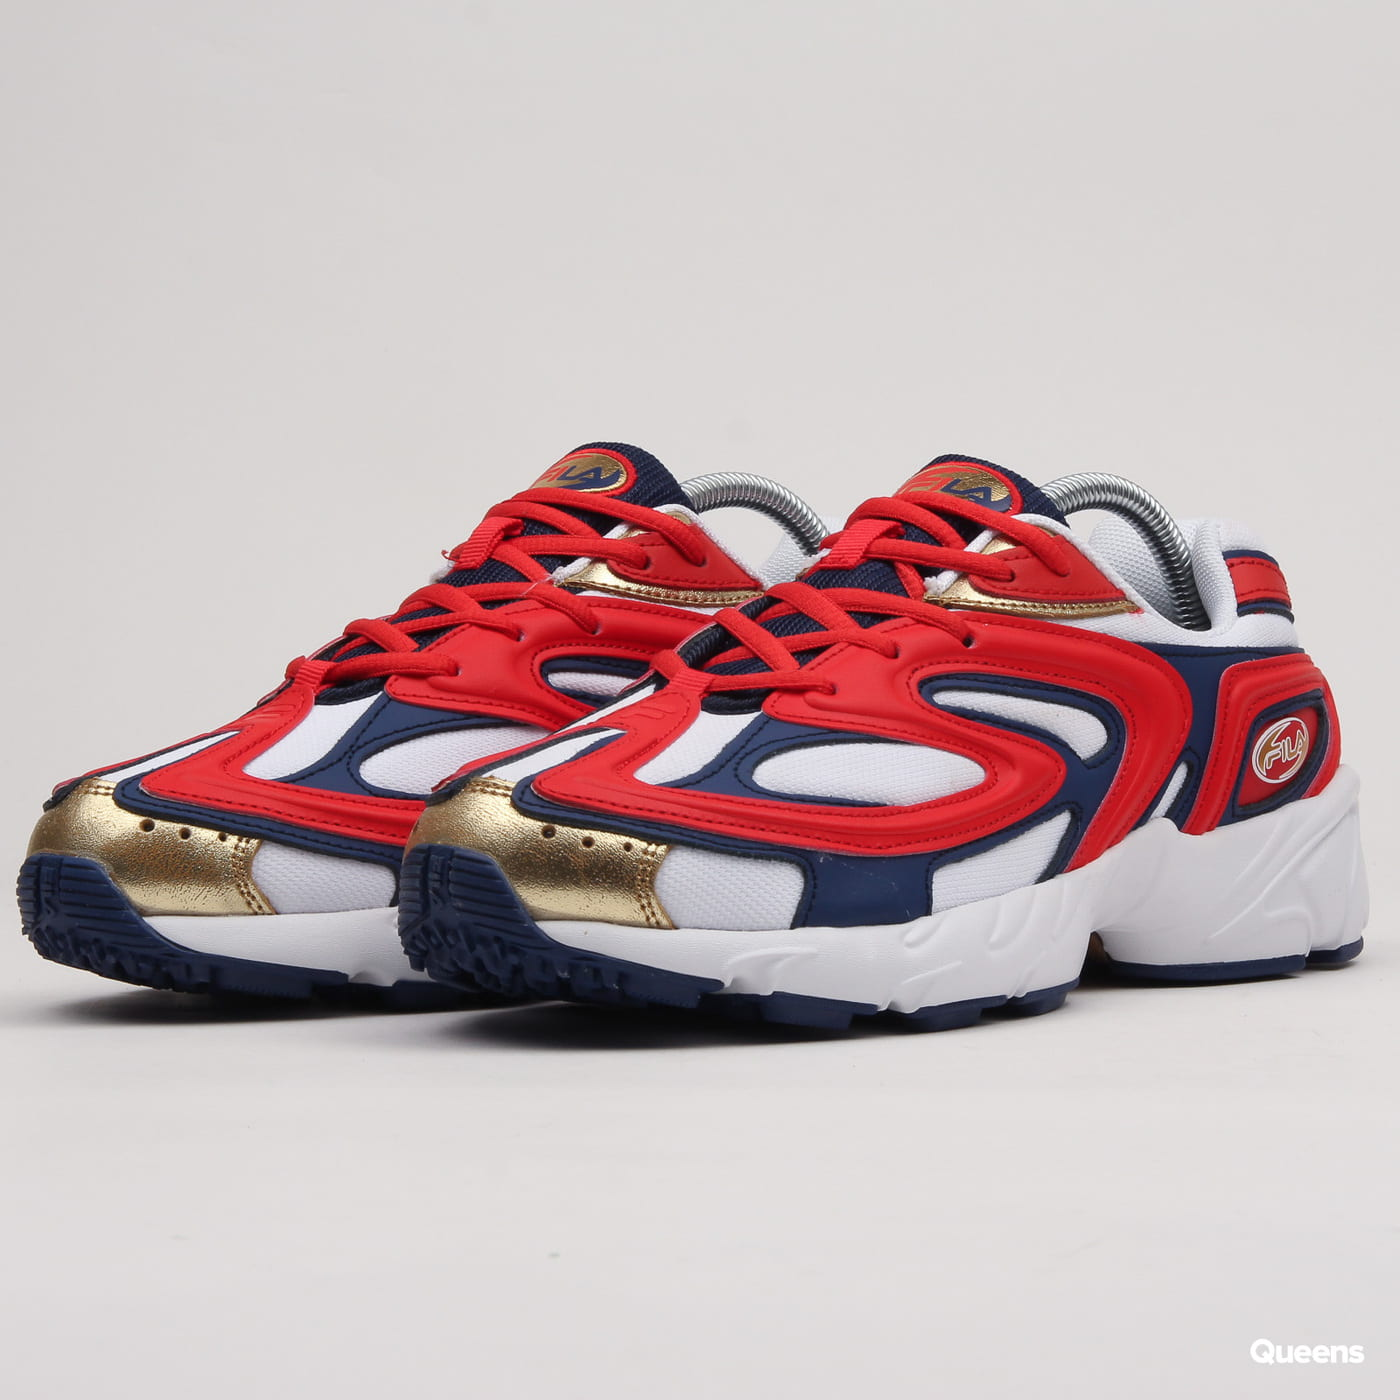 25dd07ac687 Sneakers Fila Creator fiery red / white / estate blue (1RM00614 40N) –  Queens 💚